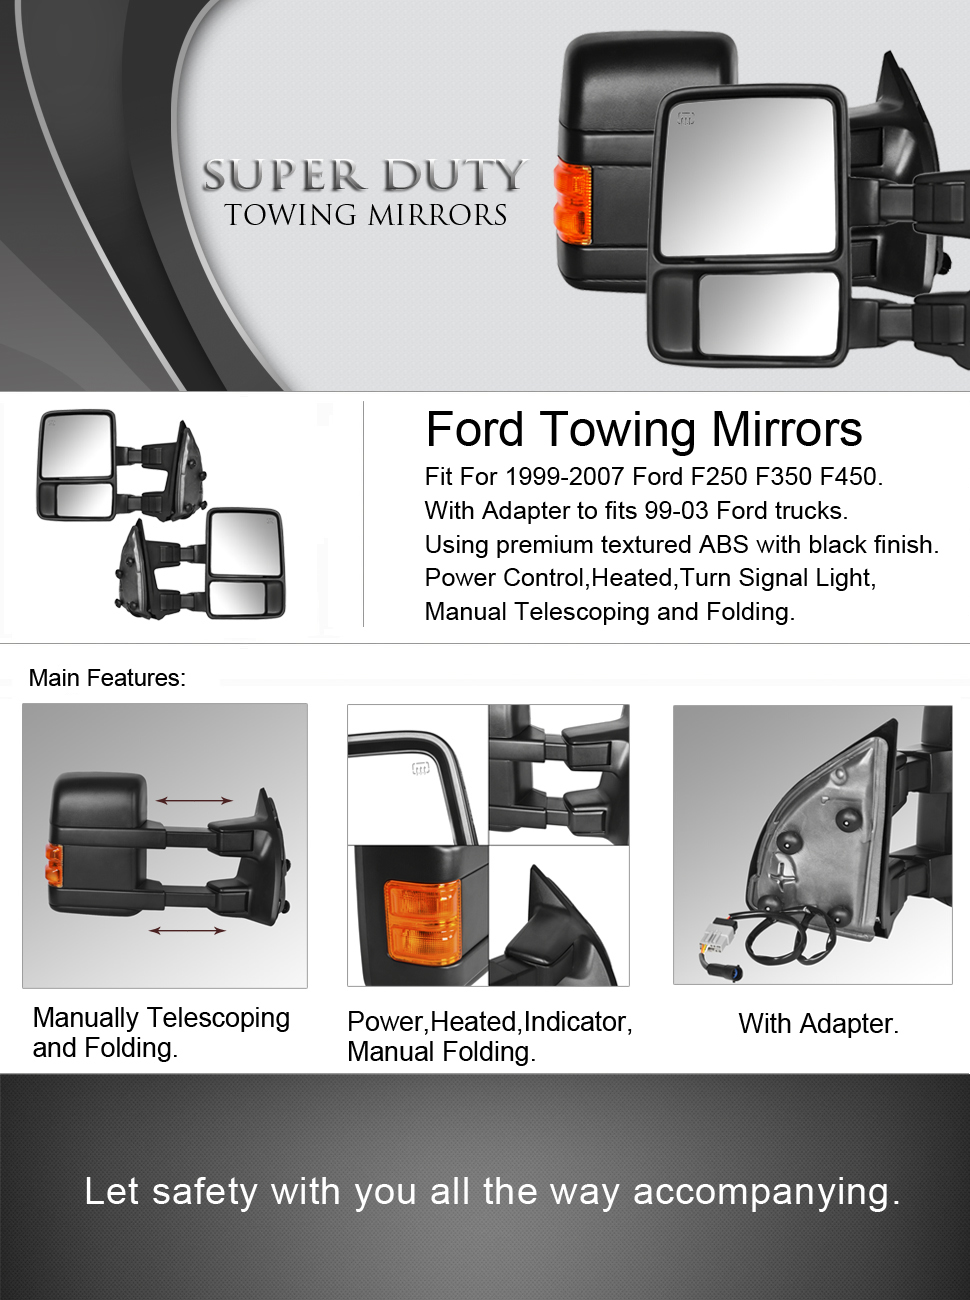 Dedc Pair 1999 2007 Ford Super Duty F250 F350 F450 Side 2013 Wiring Schematic Towing Mirrors Tow For Mirror Power Heated With Signal Light Upgrade To 08 Superduty Retrofit